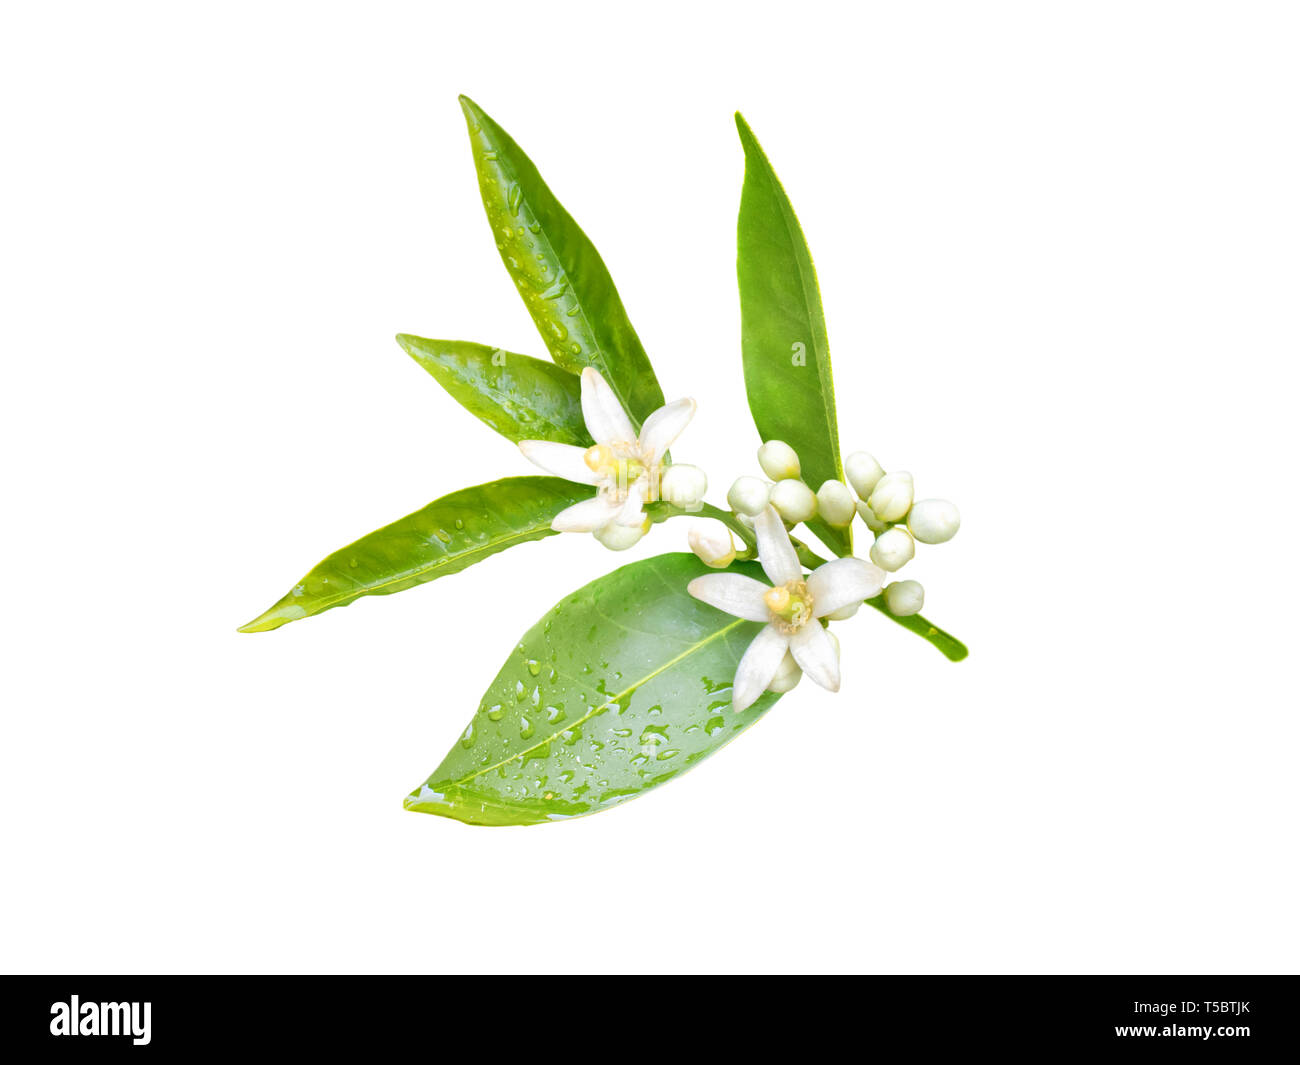 Neroli blossom. Orange tree branch with white fragrant flowers, buds and leaves isolated on white. - Stock Image